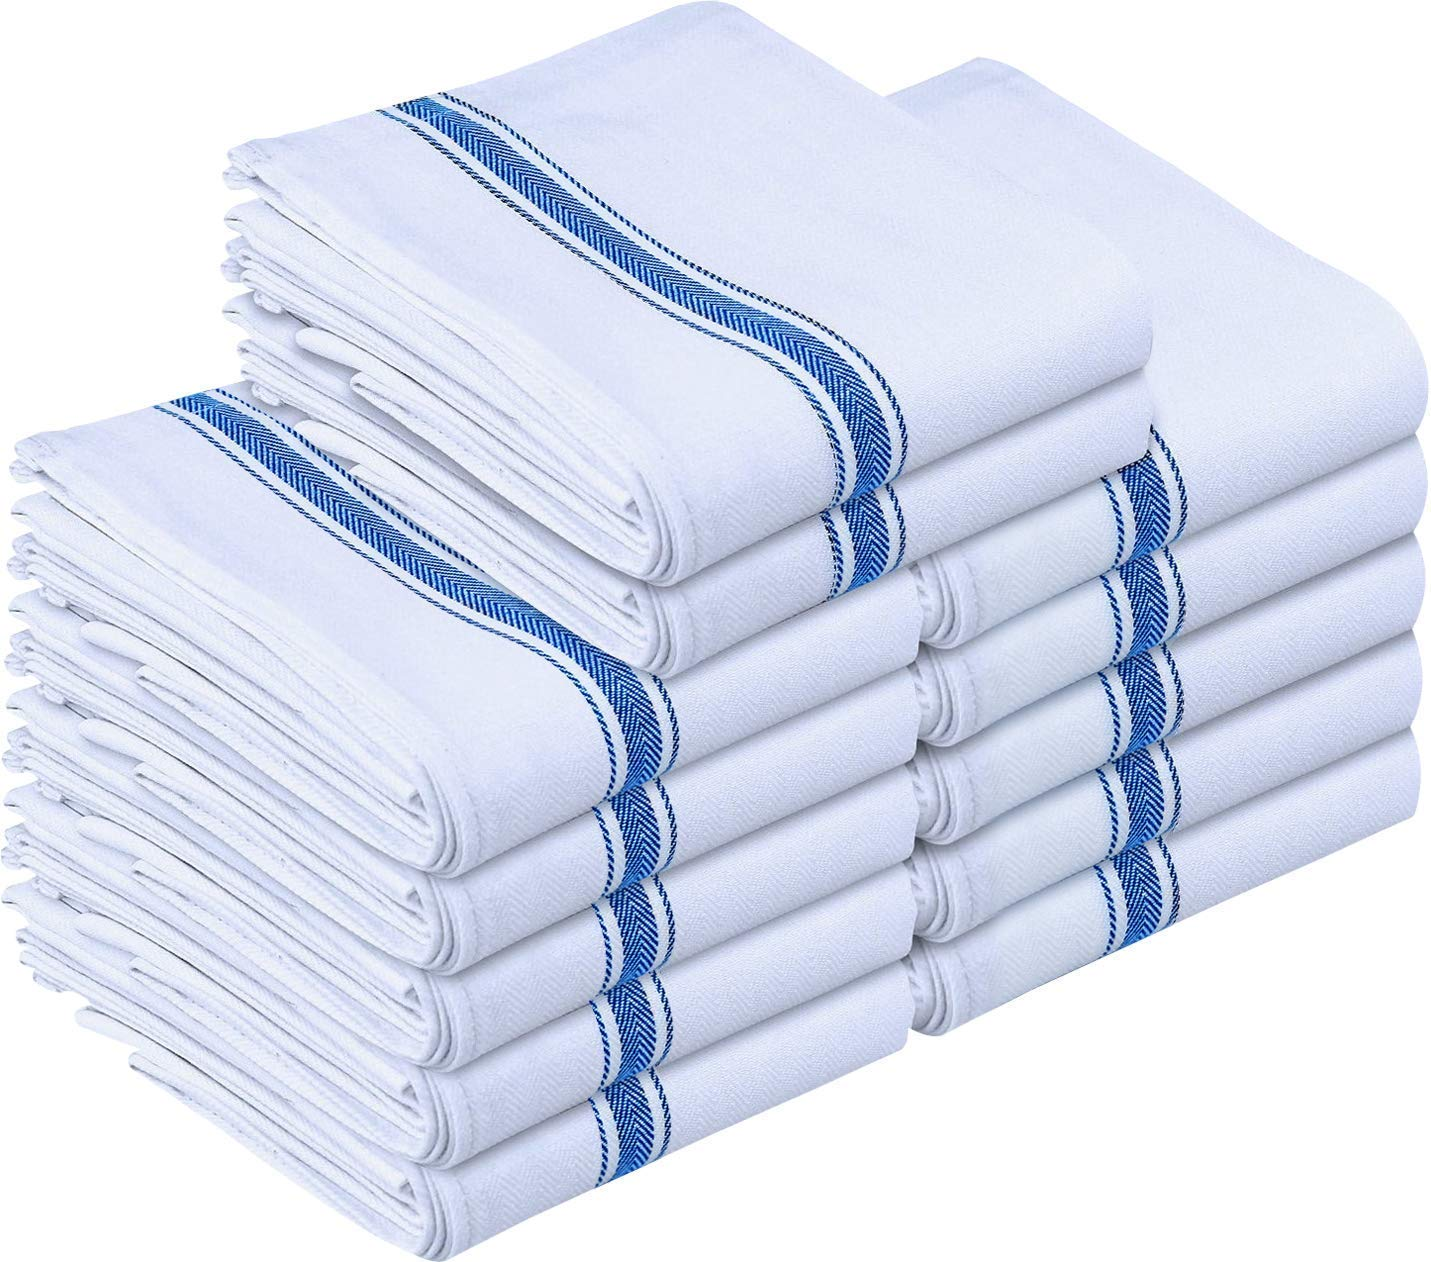 Utopia Towels Kitchen Towels 12 Pack, 15 x 25 Inches Cotton Dish Towels, Tea Towels and Bar Towels, Blue by Utopia Towels